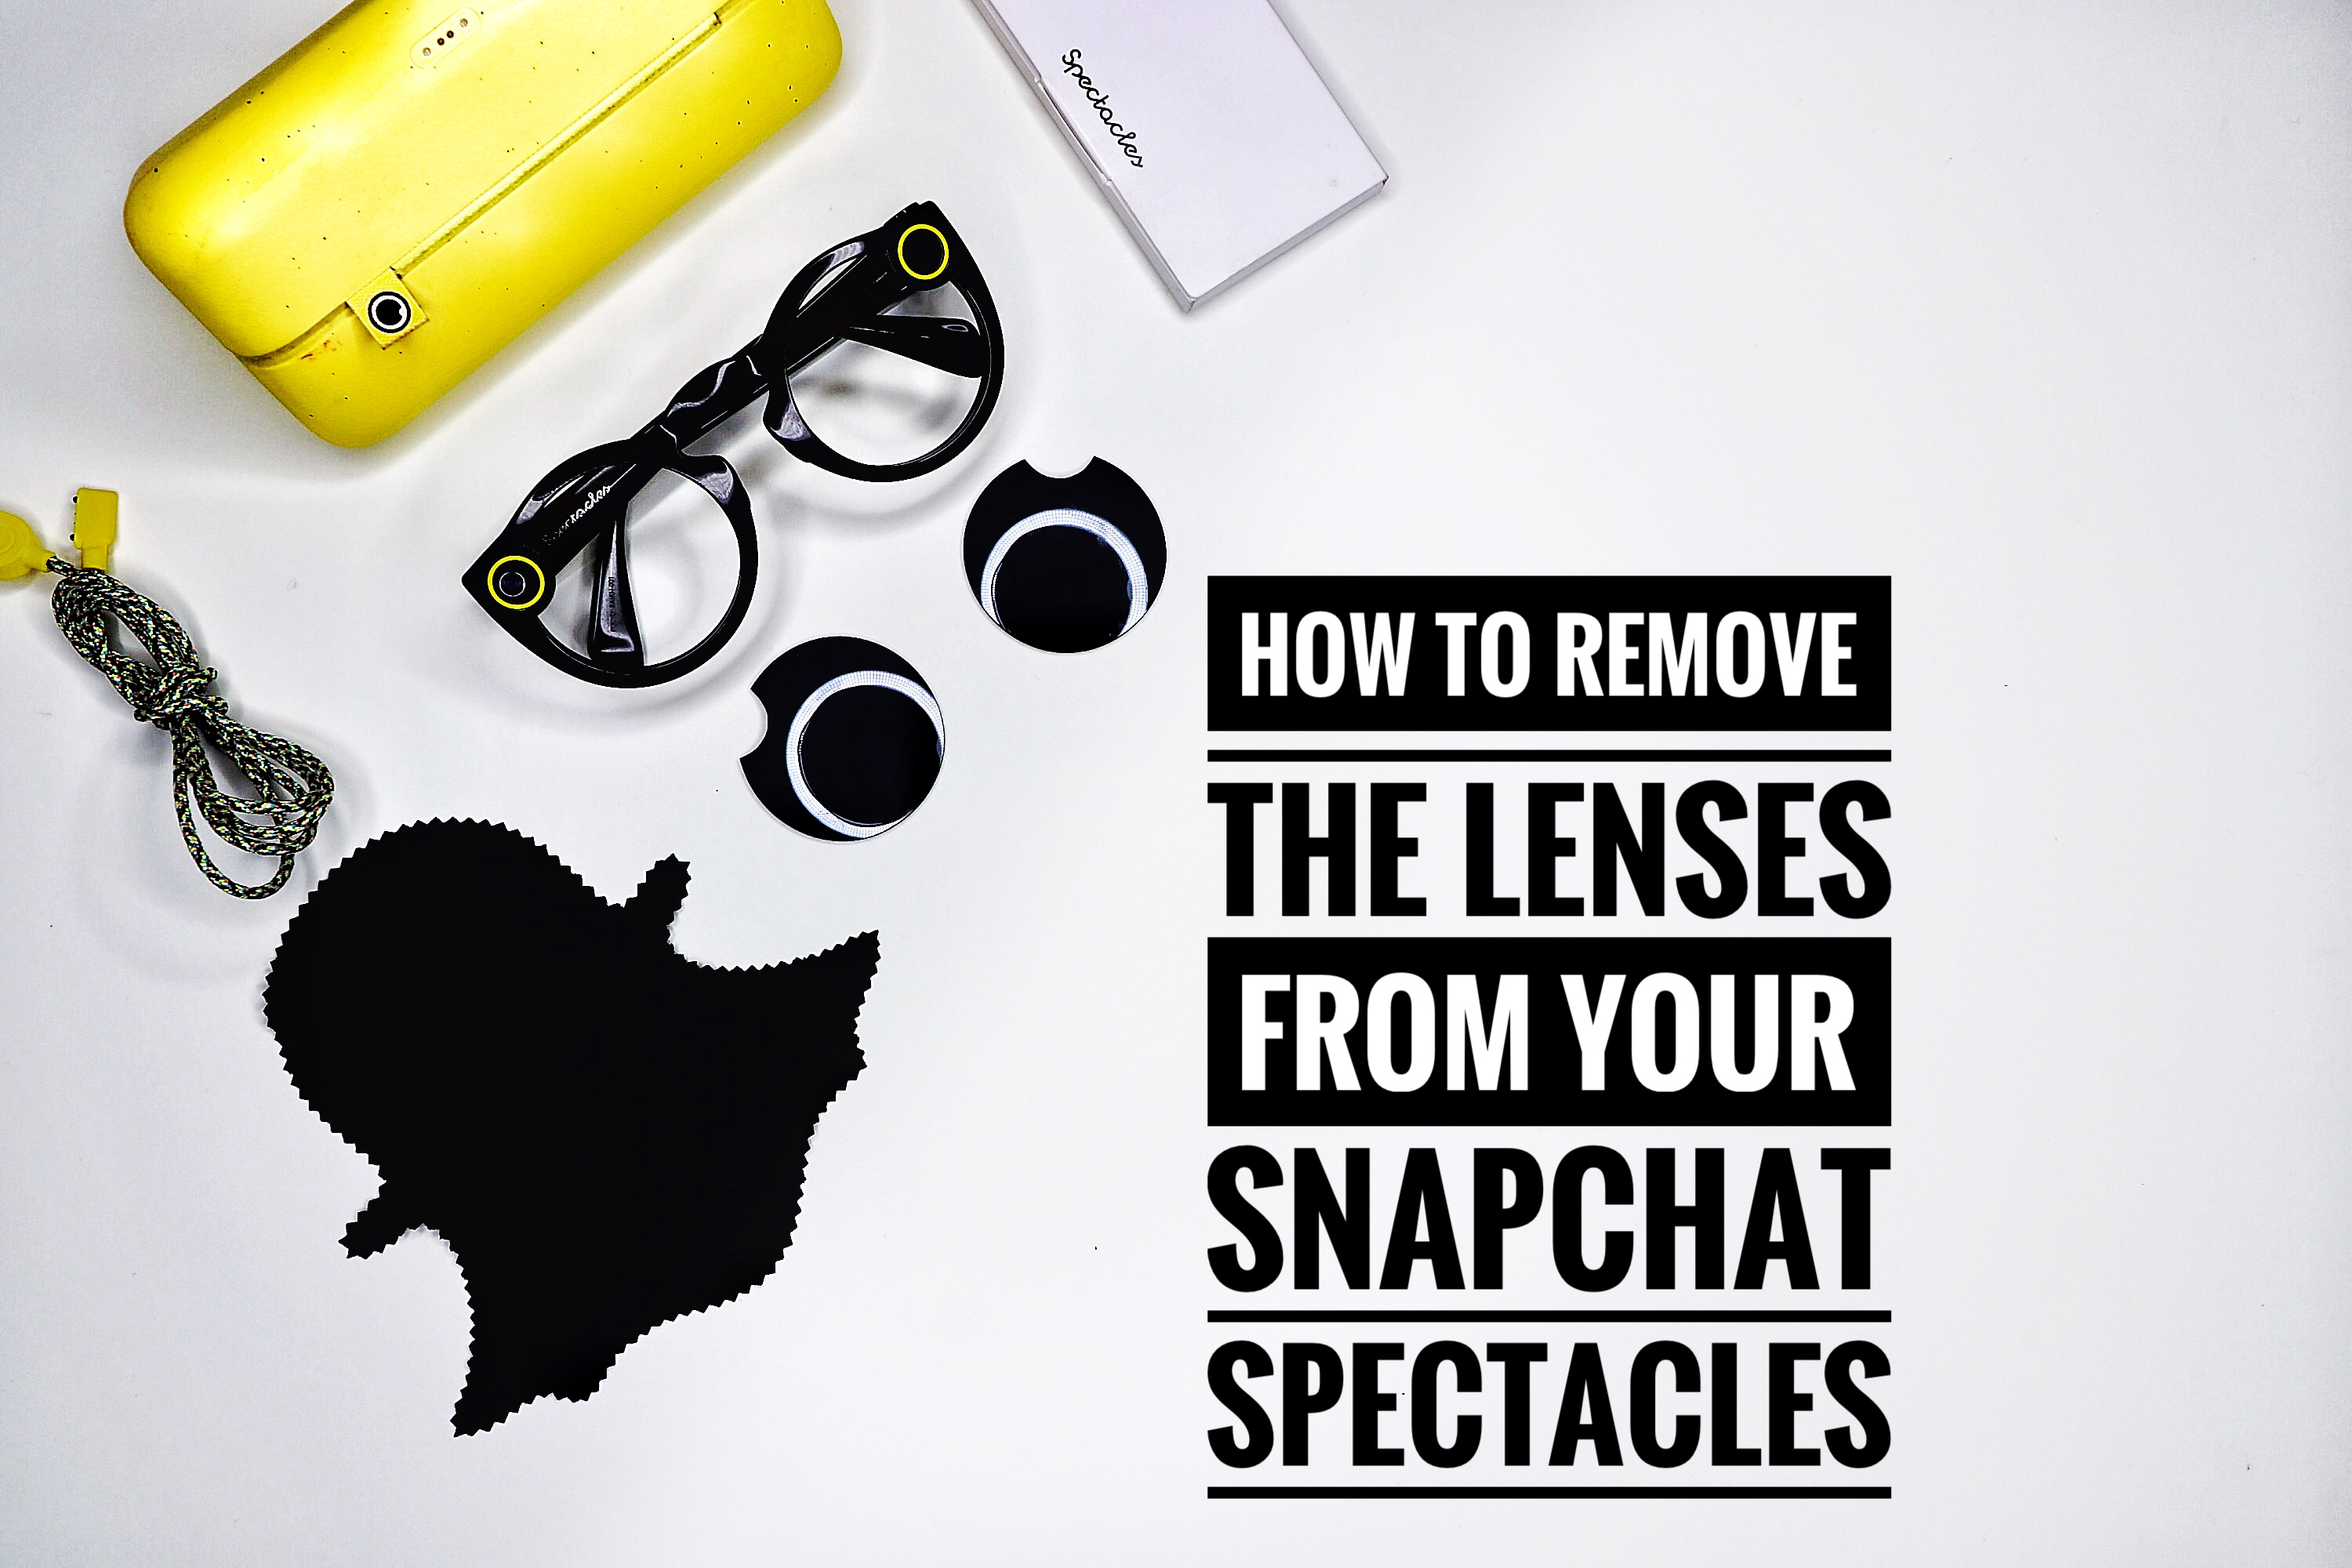 cb0a489f3f How to remove the lenses from your Snapchat Spectacles